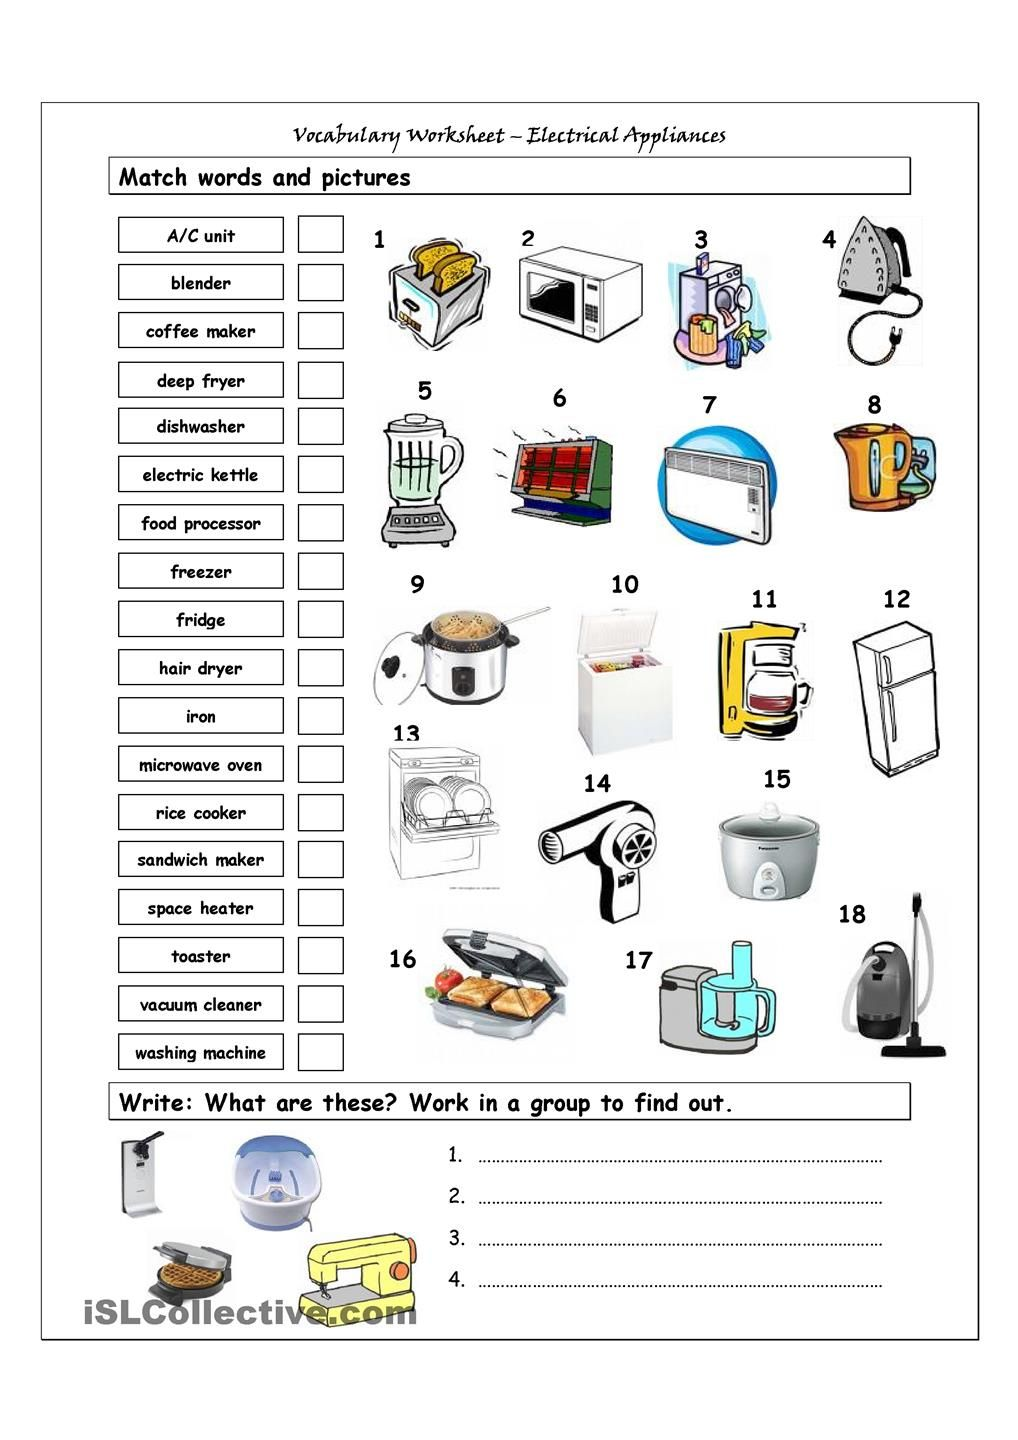 Worksheets Esl Vocabulary Worksheets vocabulary matching worksheet home appliances english language containing it has two sections match words and pictures exercise write the